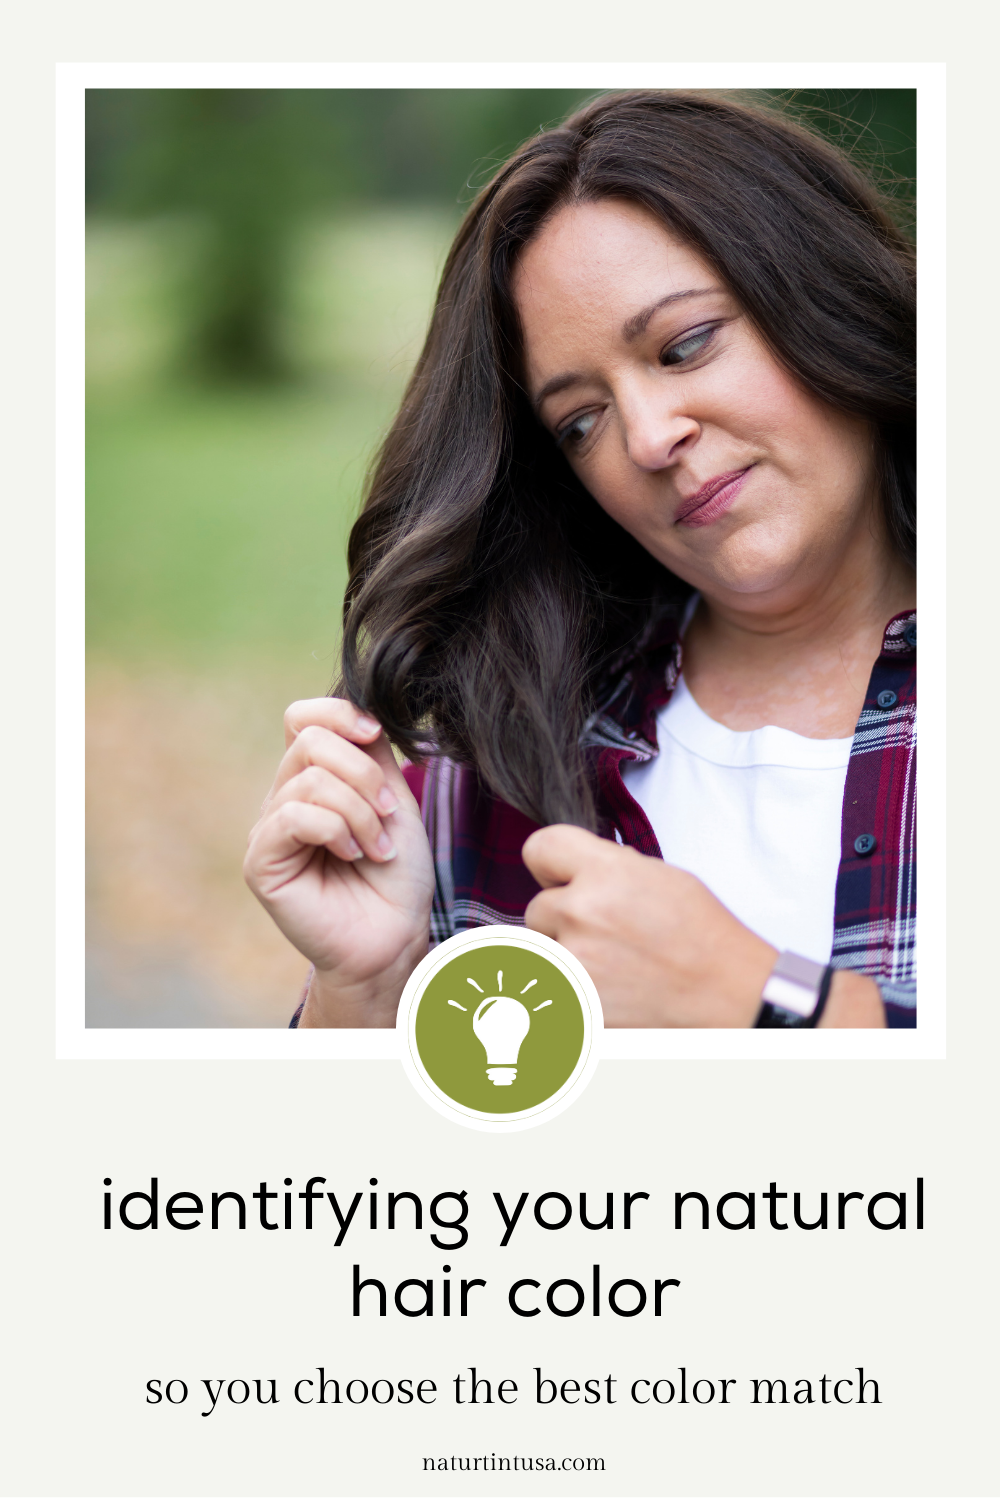 identifying your natural hair color to find the best color match